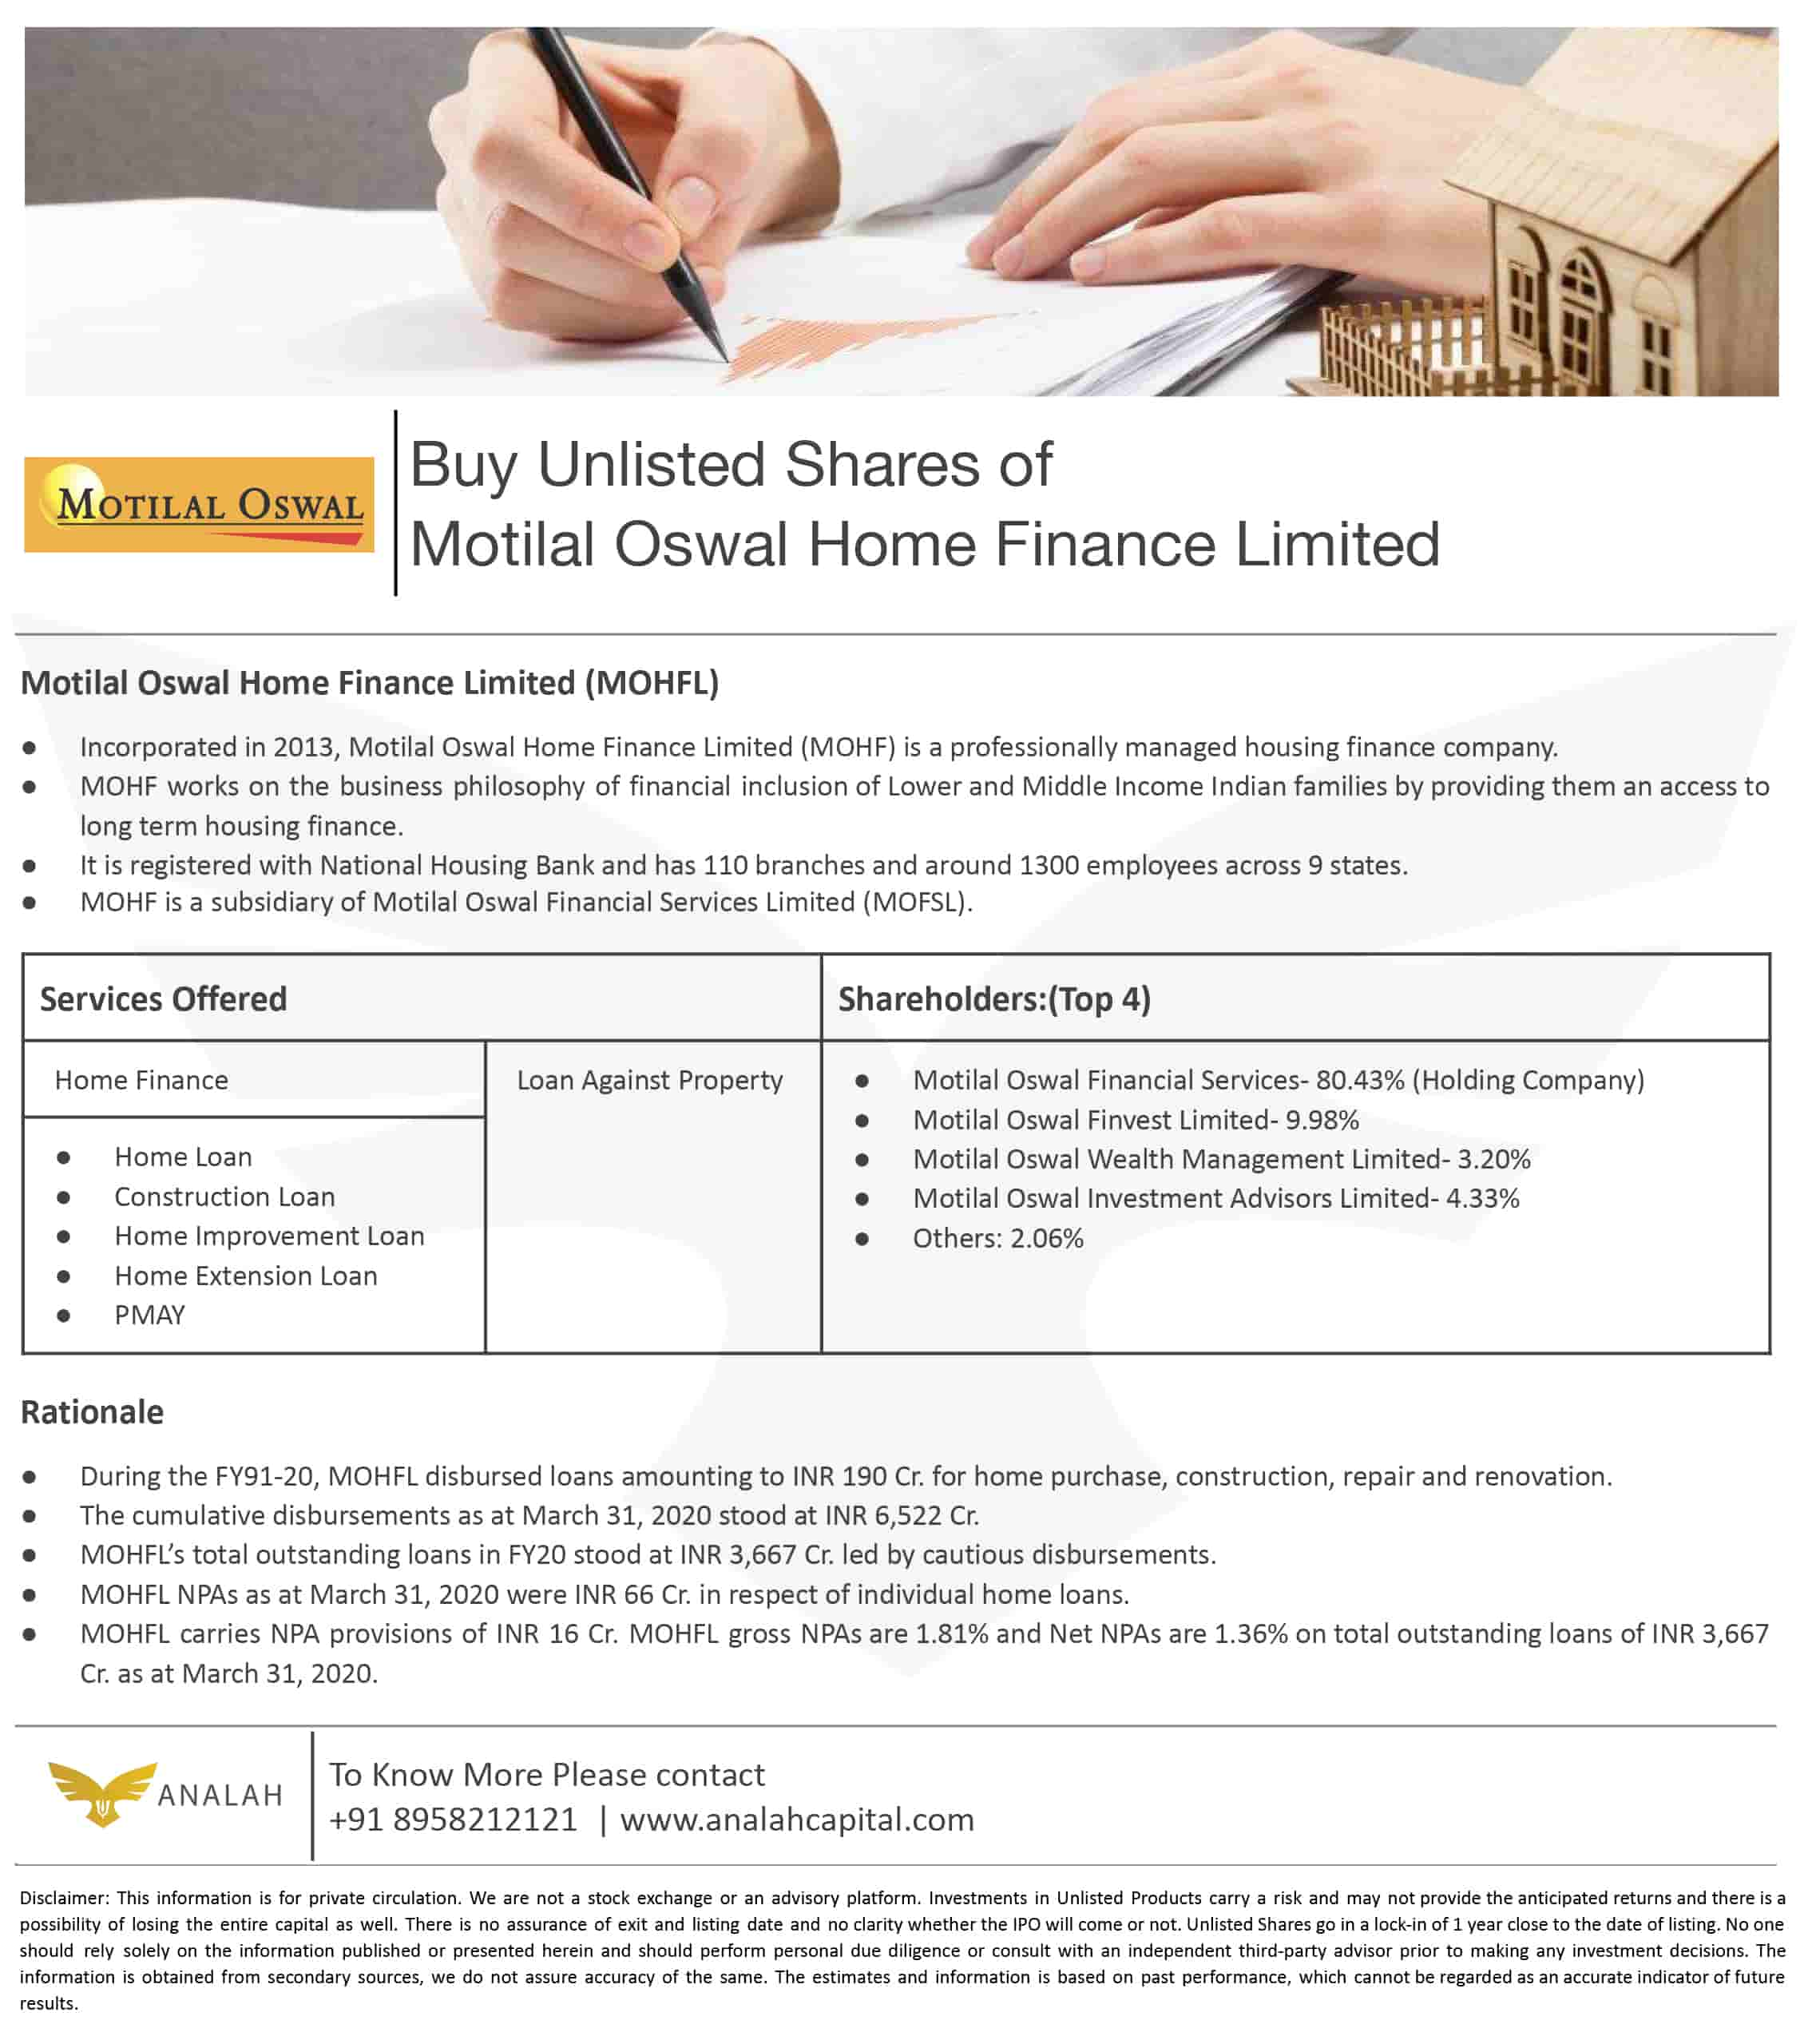 Motilal Oswal Unlisted Shares